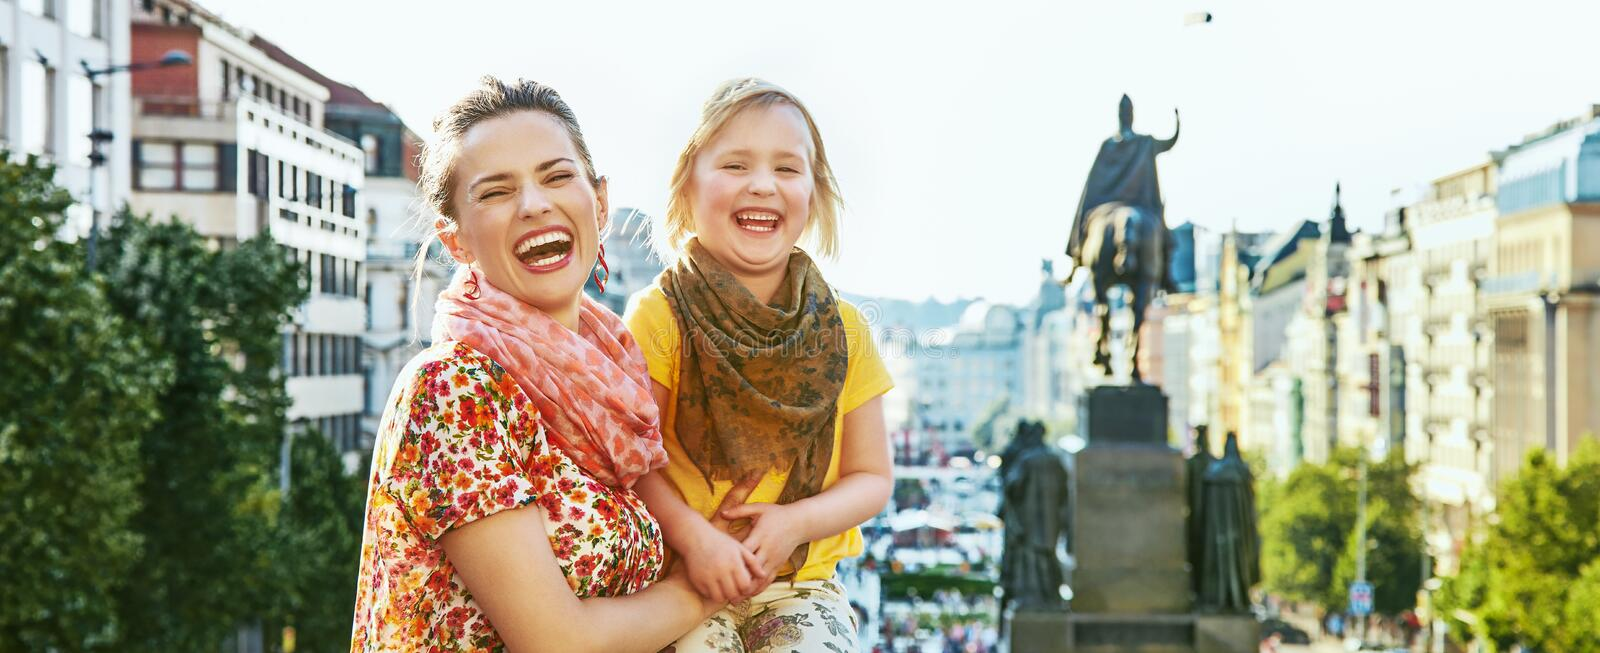 Happy mother and daughter tourists in Prague Czech Republic royalty free stock photos